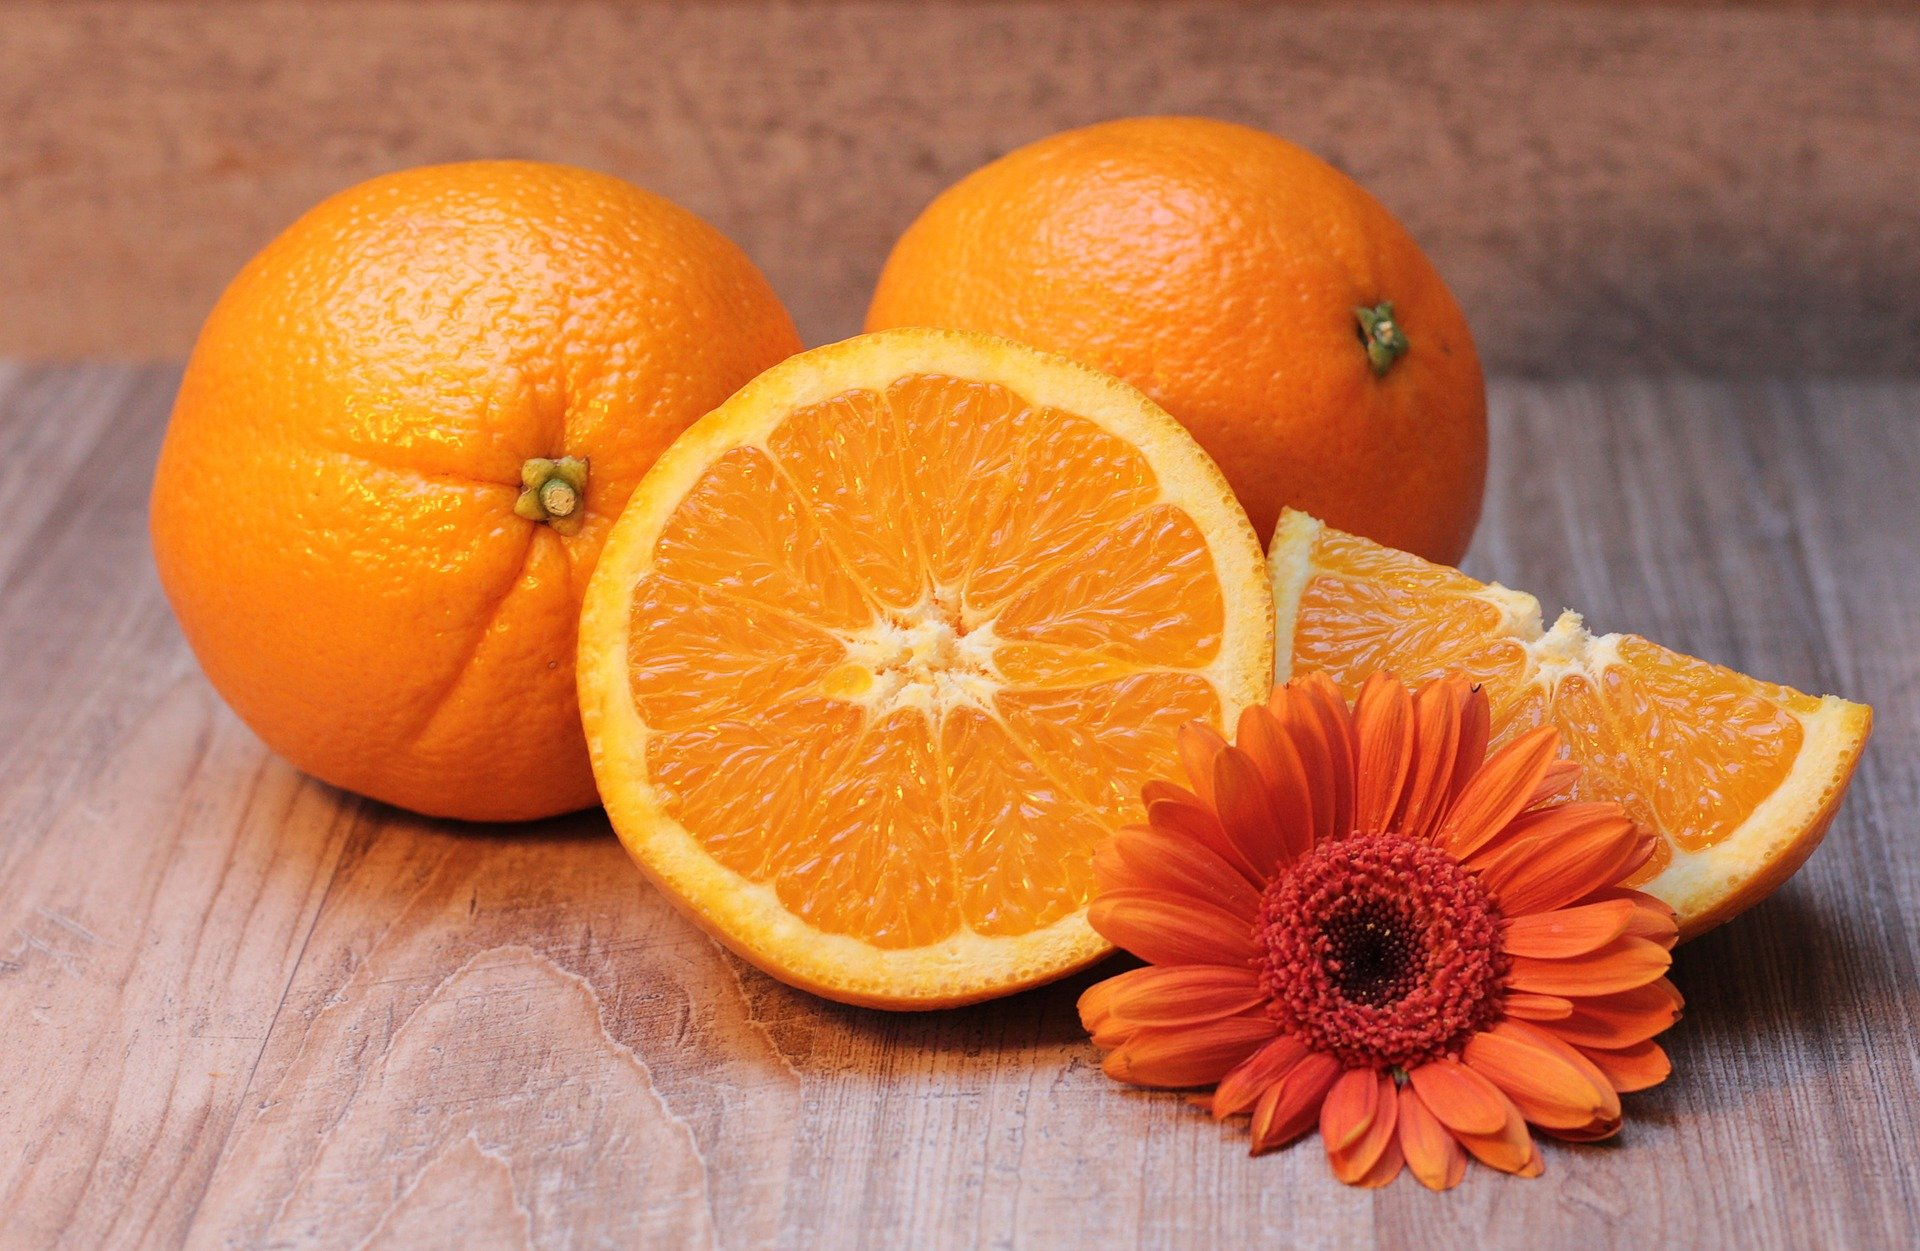 best foods for pcos - organges